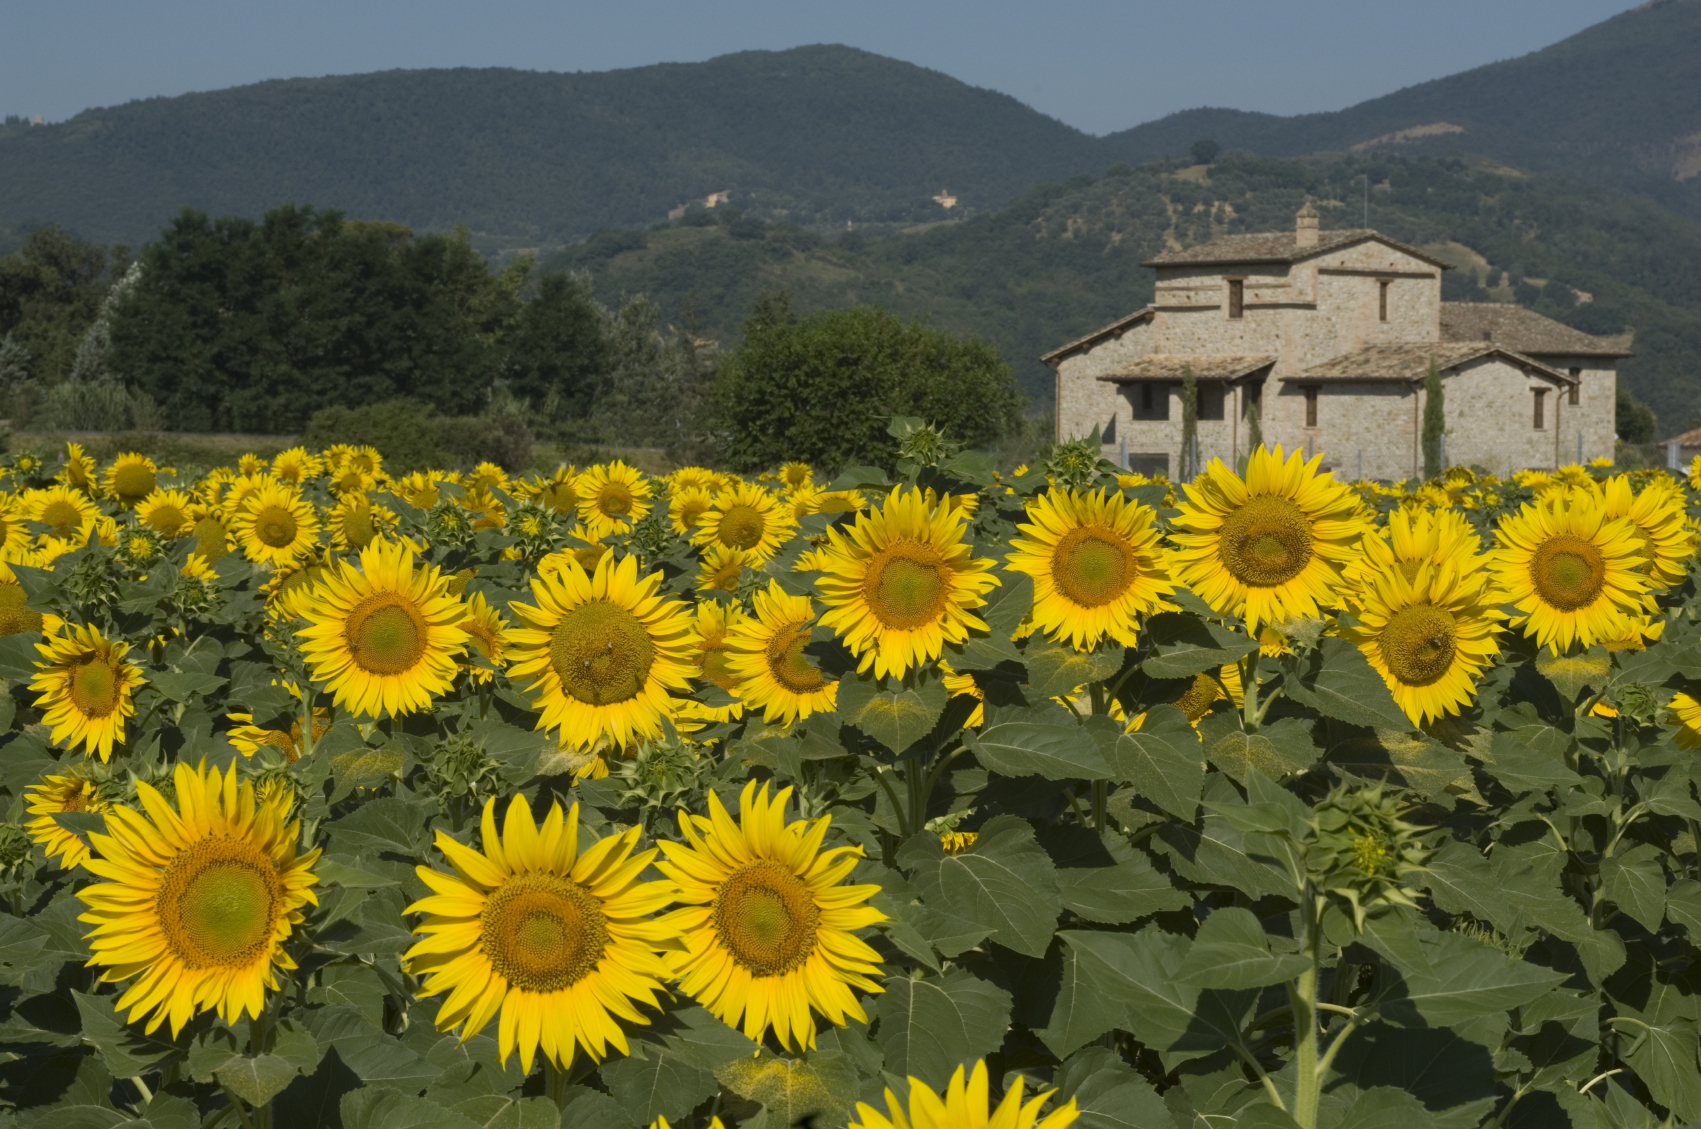 A view of Umbria with sunflowers in a field